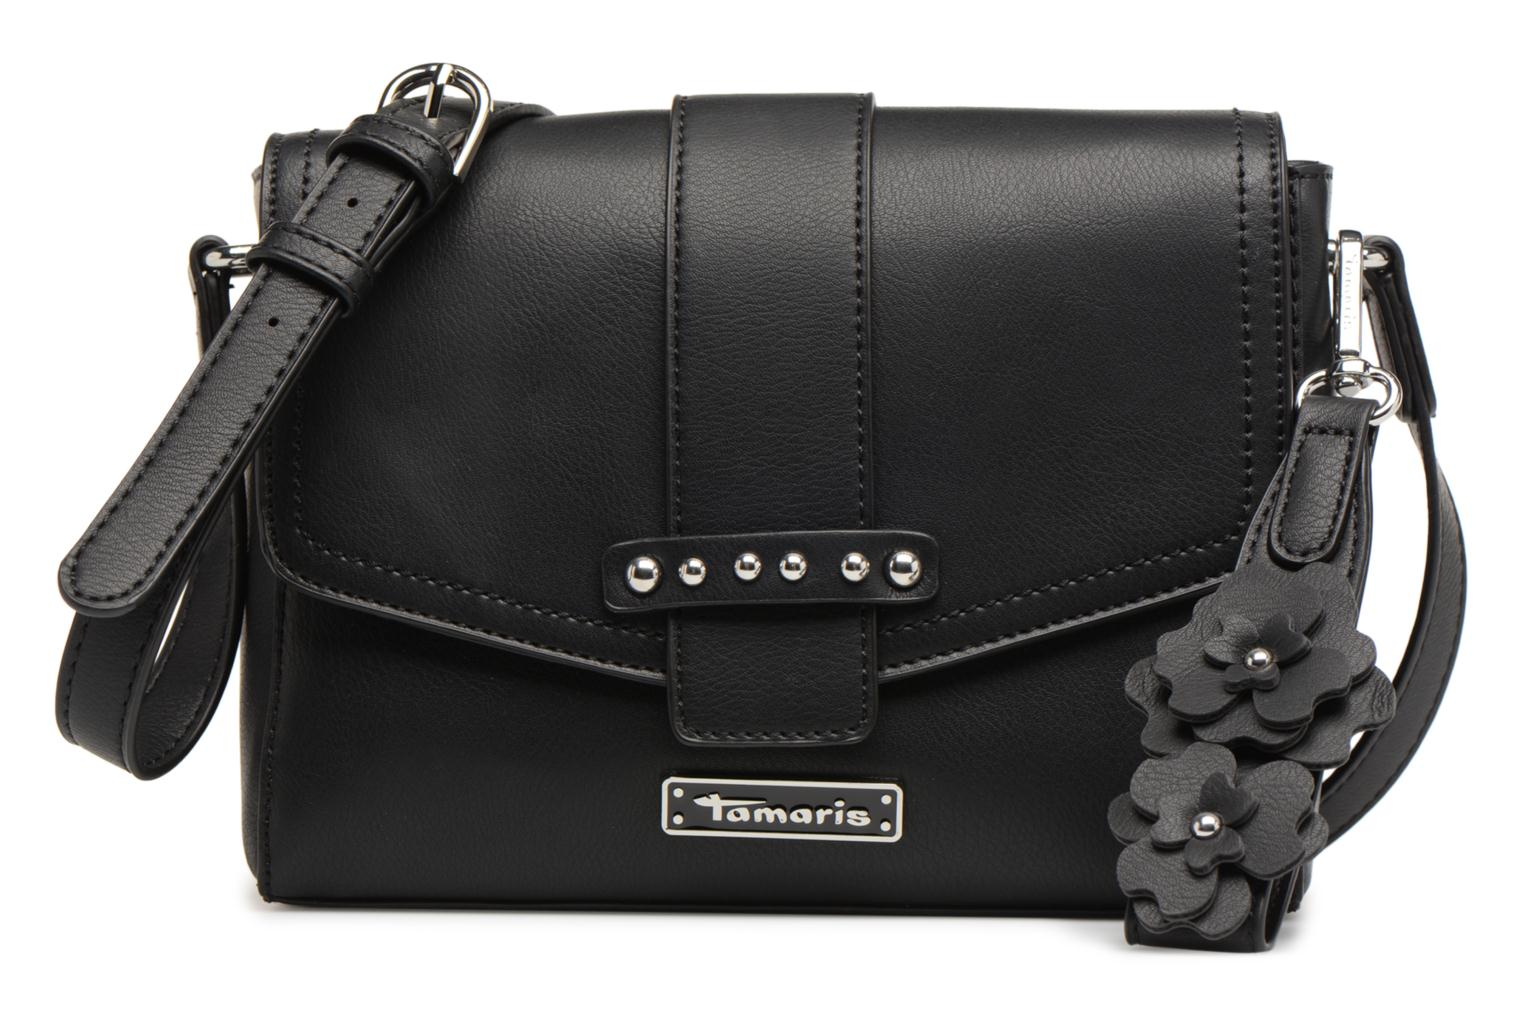 S Tamaris 001 Crossbody Danila black bag qww0gPzt